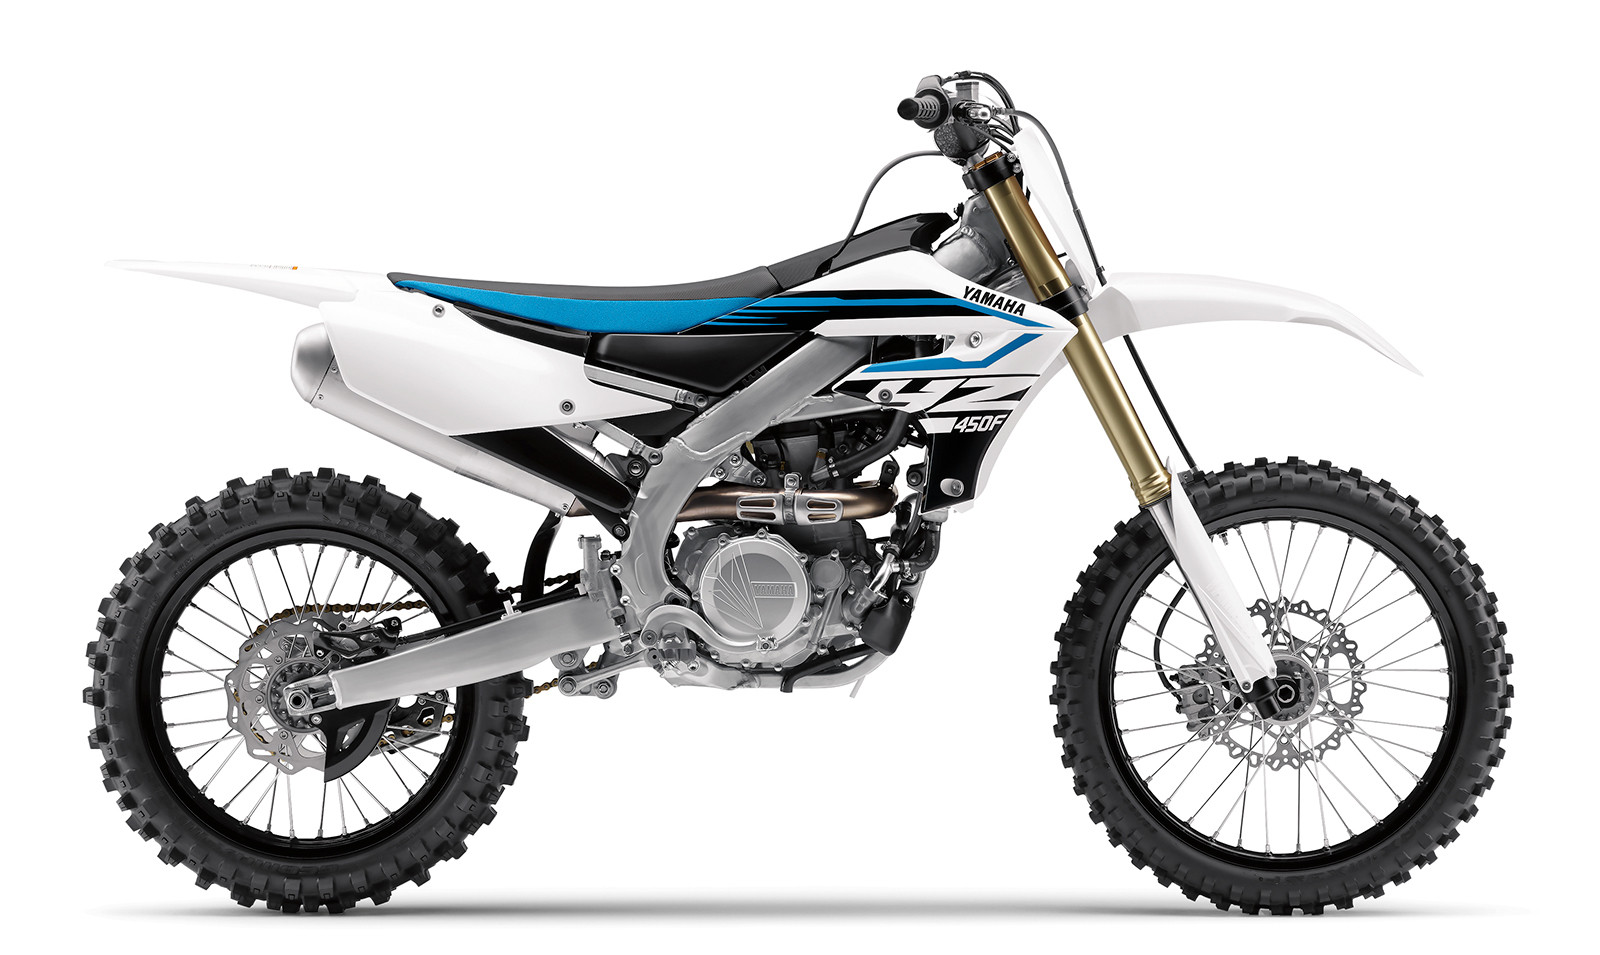 Want black wheels instead of the blue? Opt for the white 2018 Yamaha YZ450F.